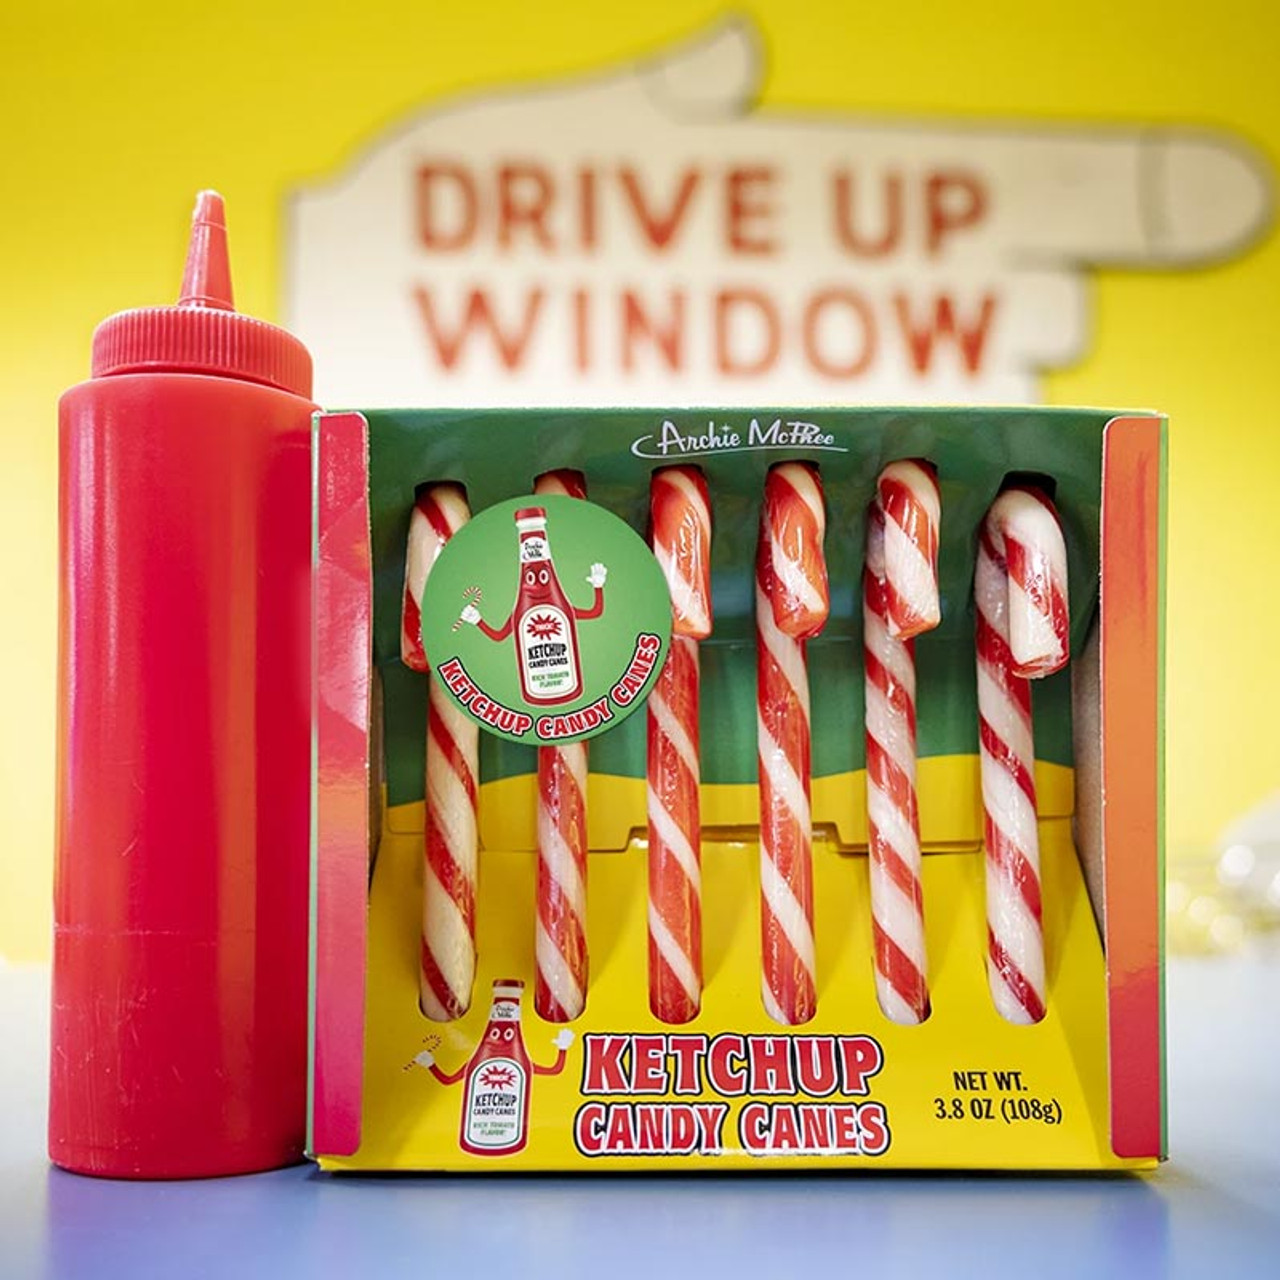 Ketchup Candy Canes - The weirdest candy!